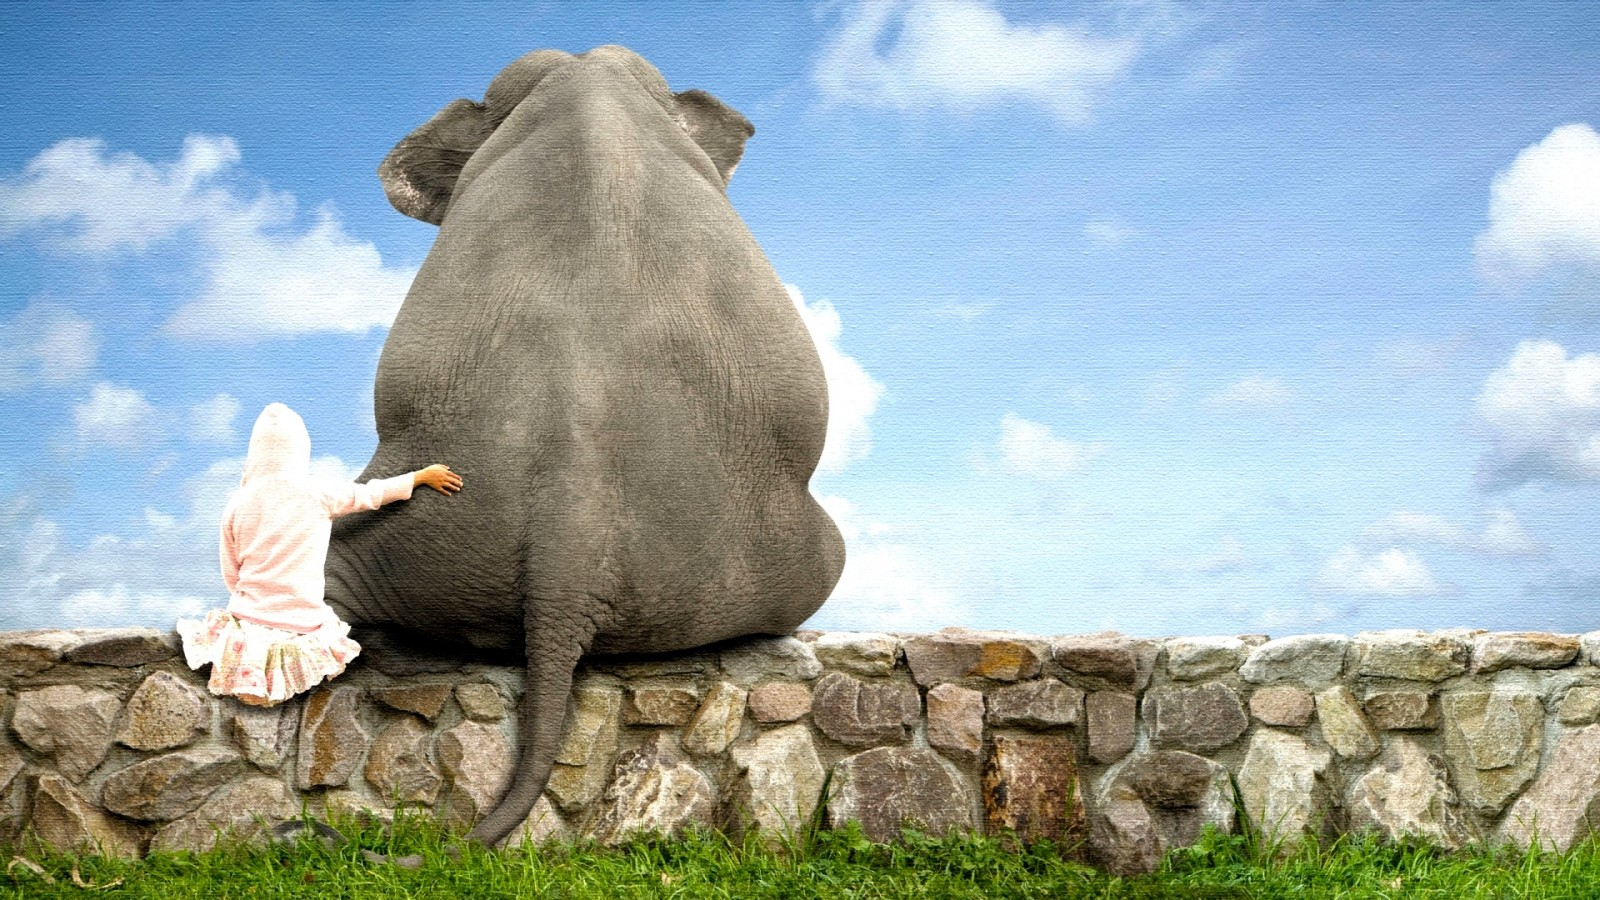 Hd wallpaper elephant - Elephant Pictures For Kids